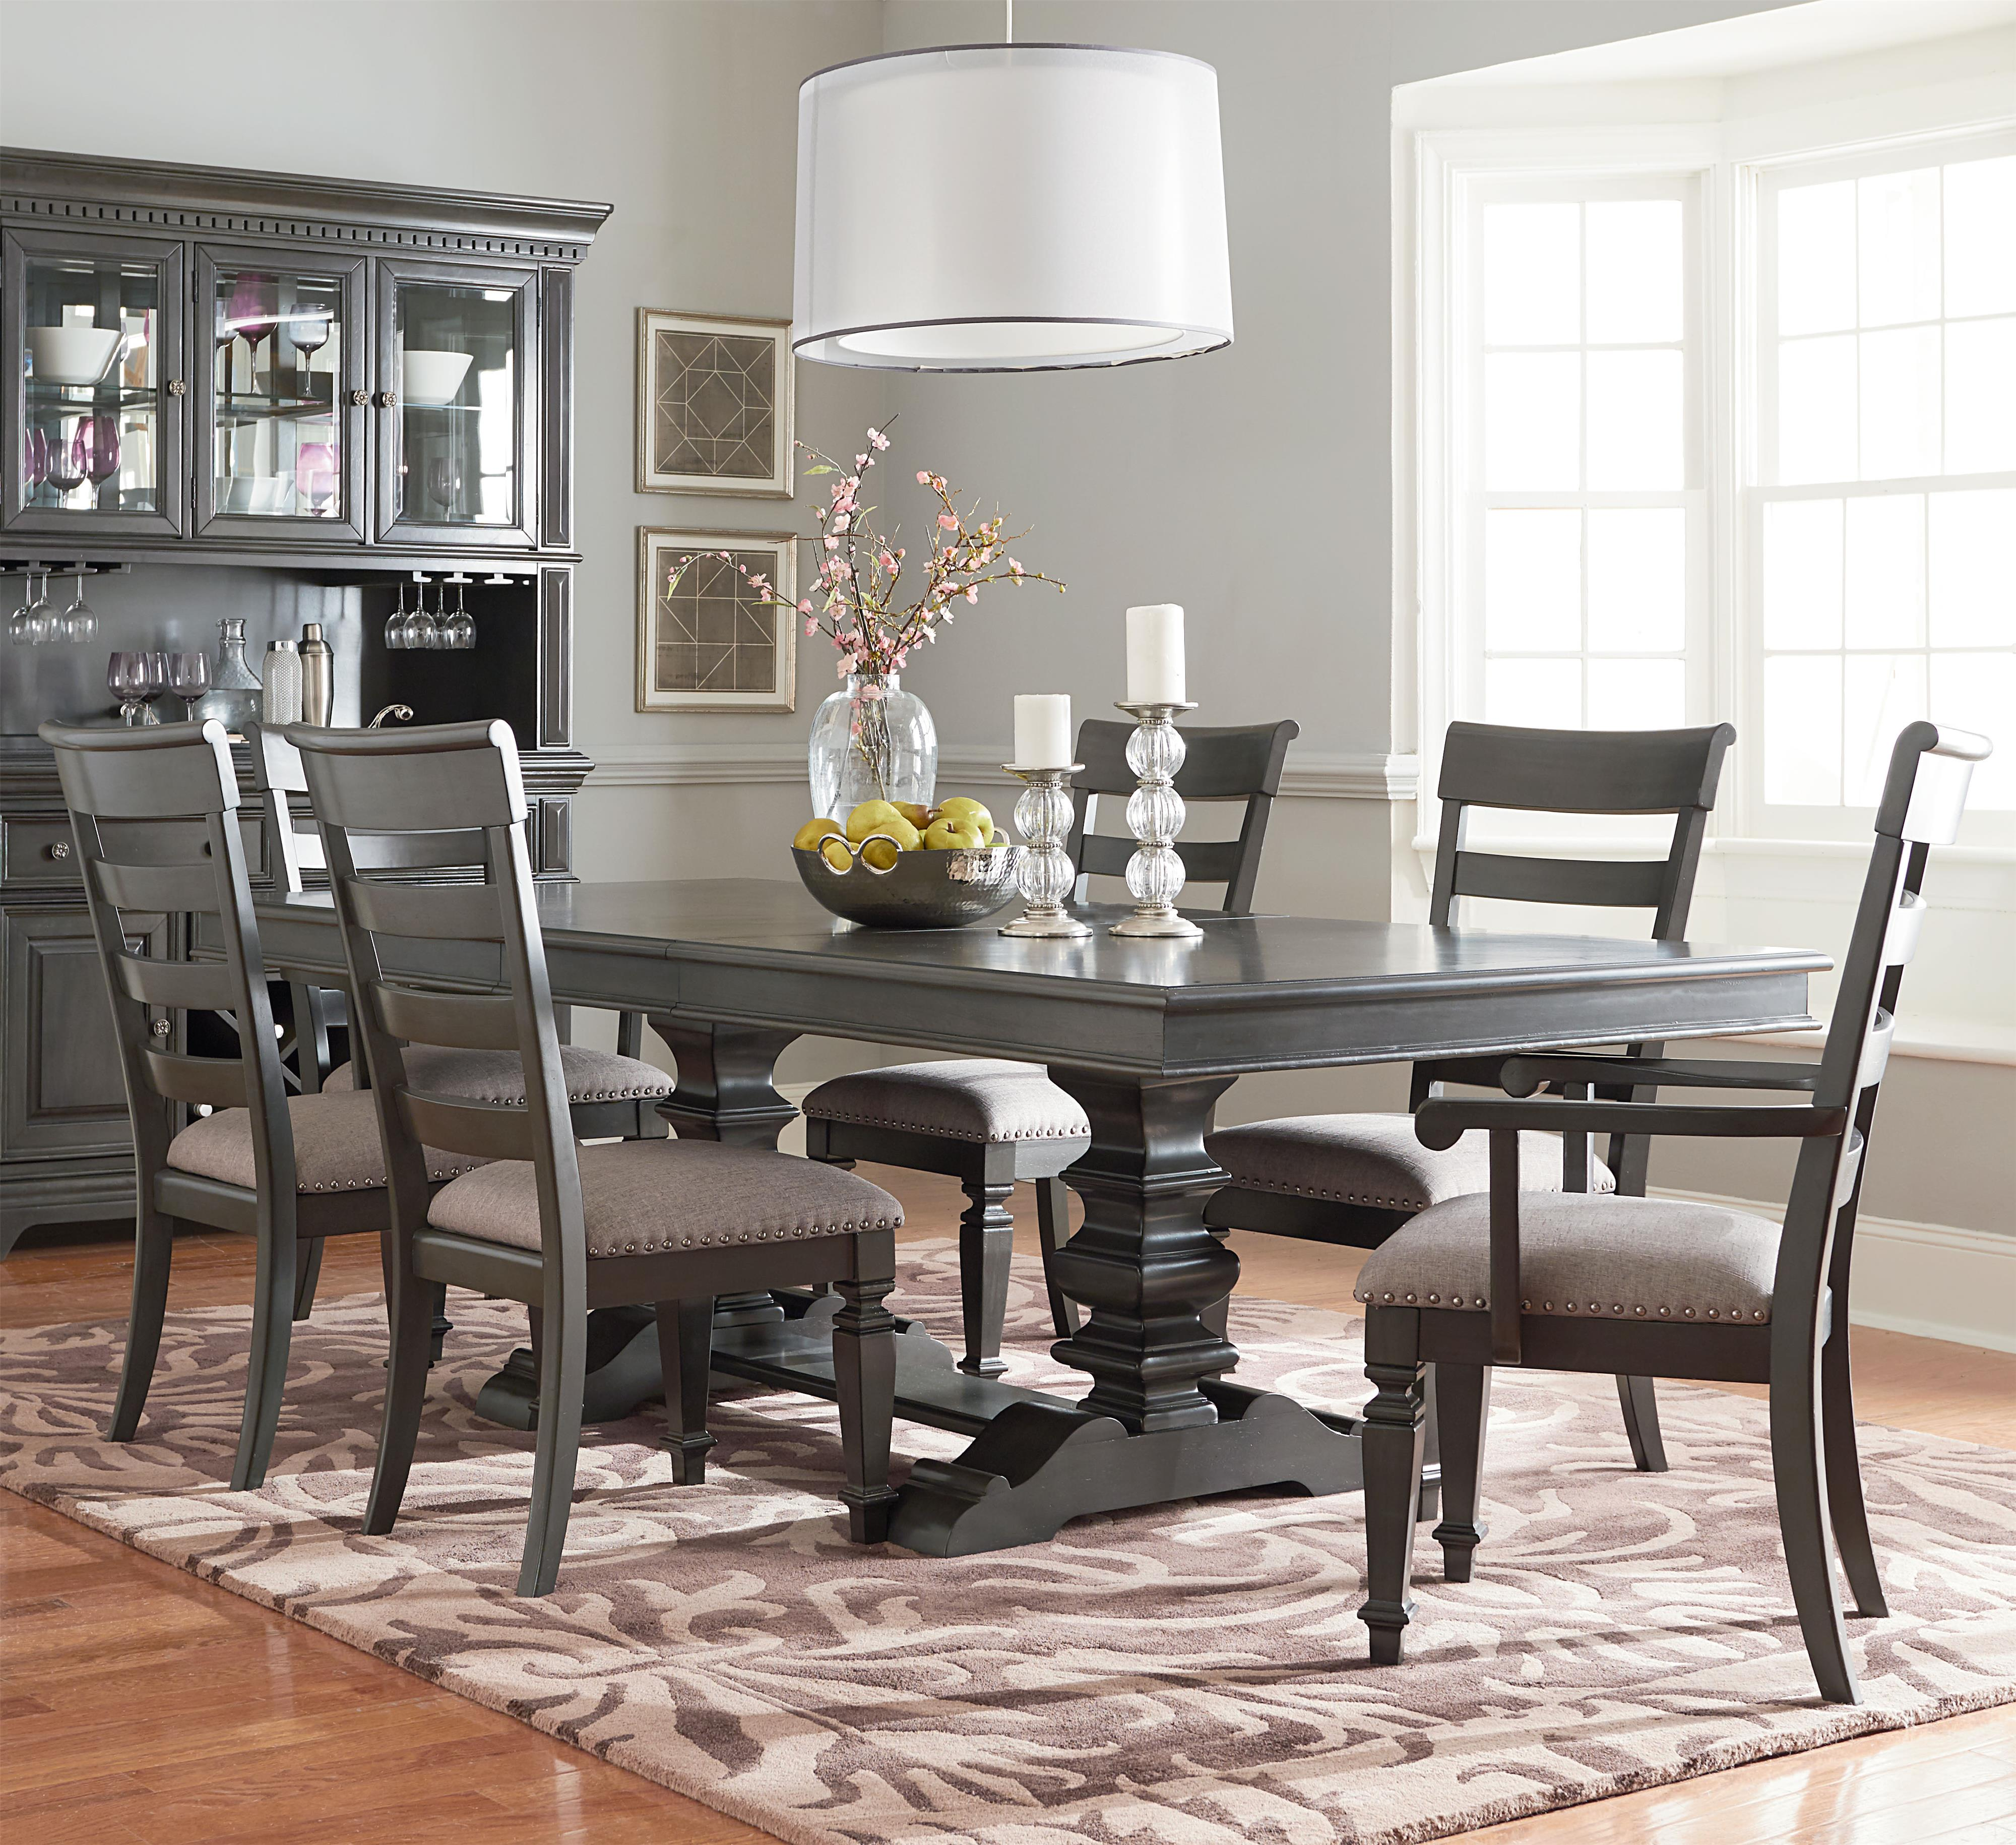 Standard Furniture Garrison Trestle Dining Table Set - Item Number 14906+2014906+2x05 & Standard Furniture Garrison Trestle Table Dining Set with Six Chairs ...